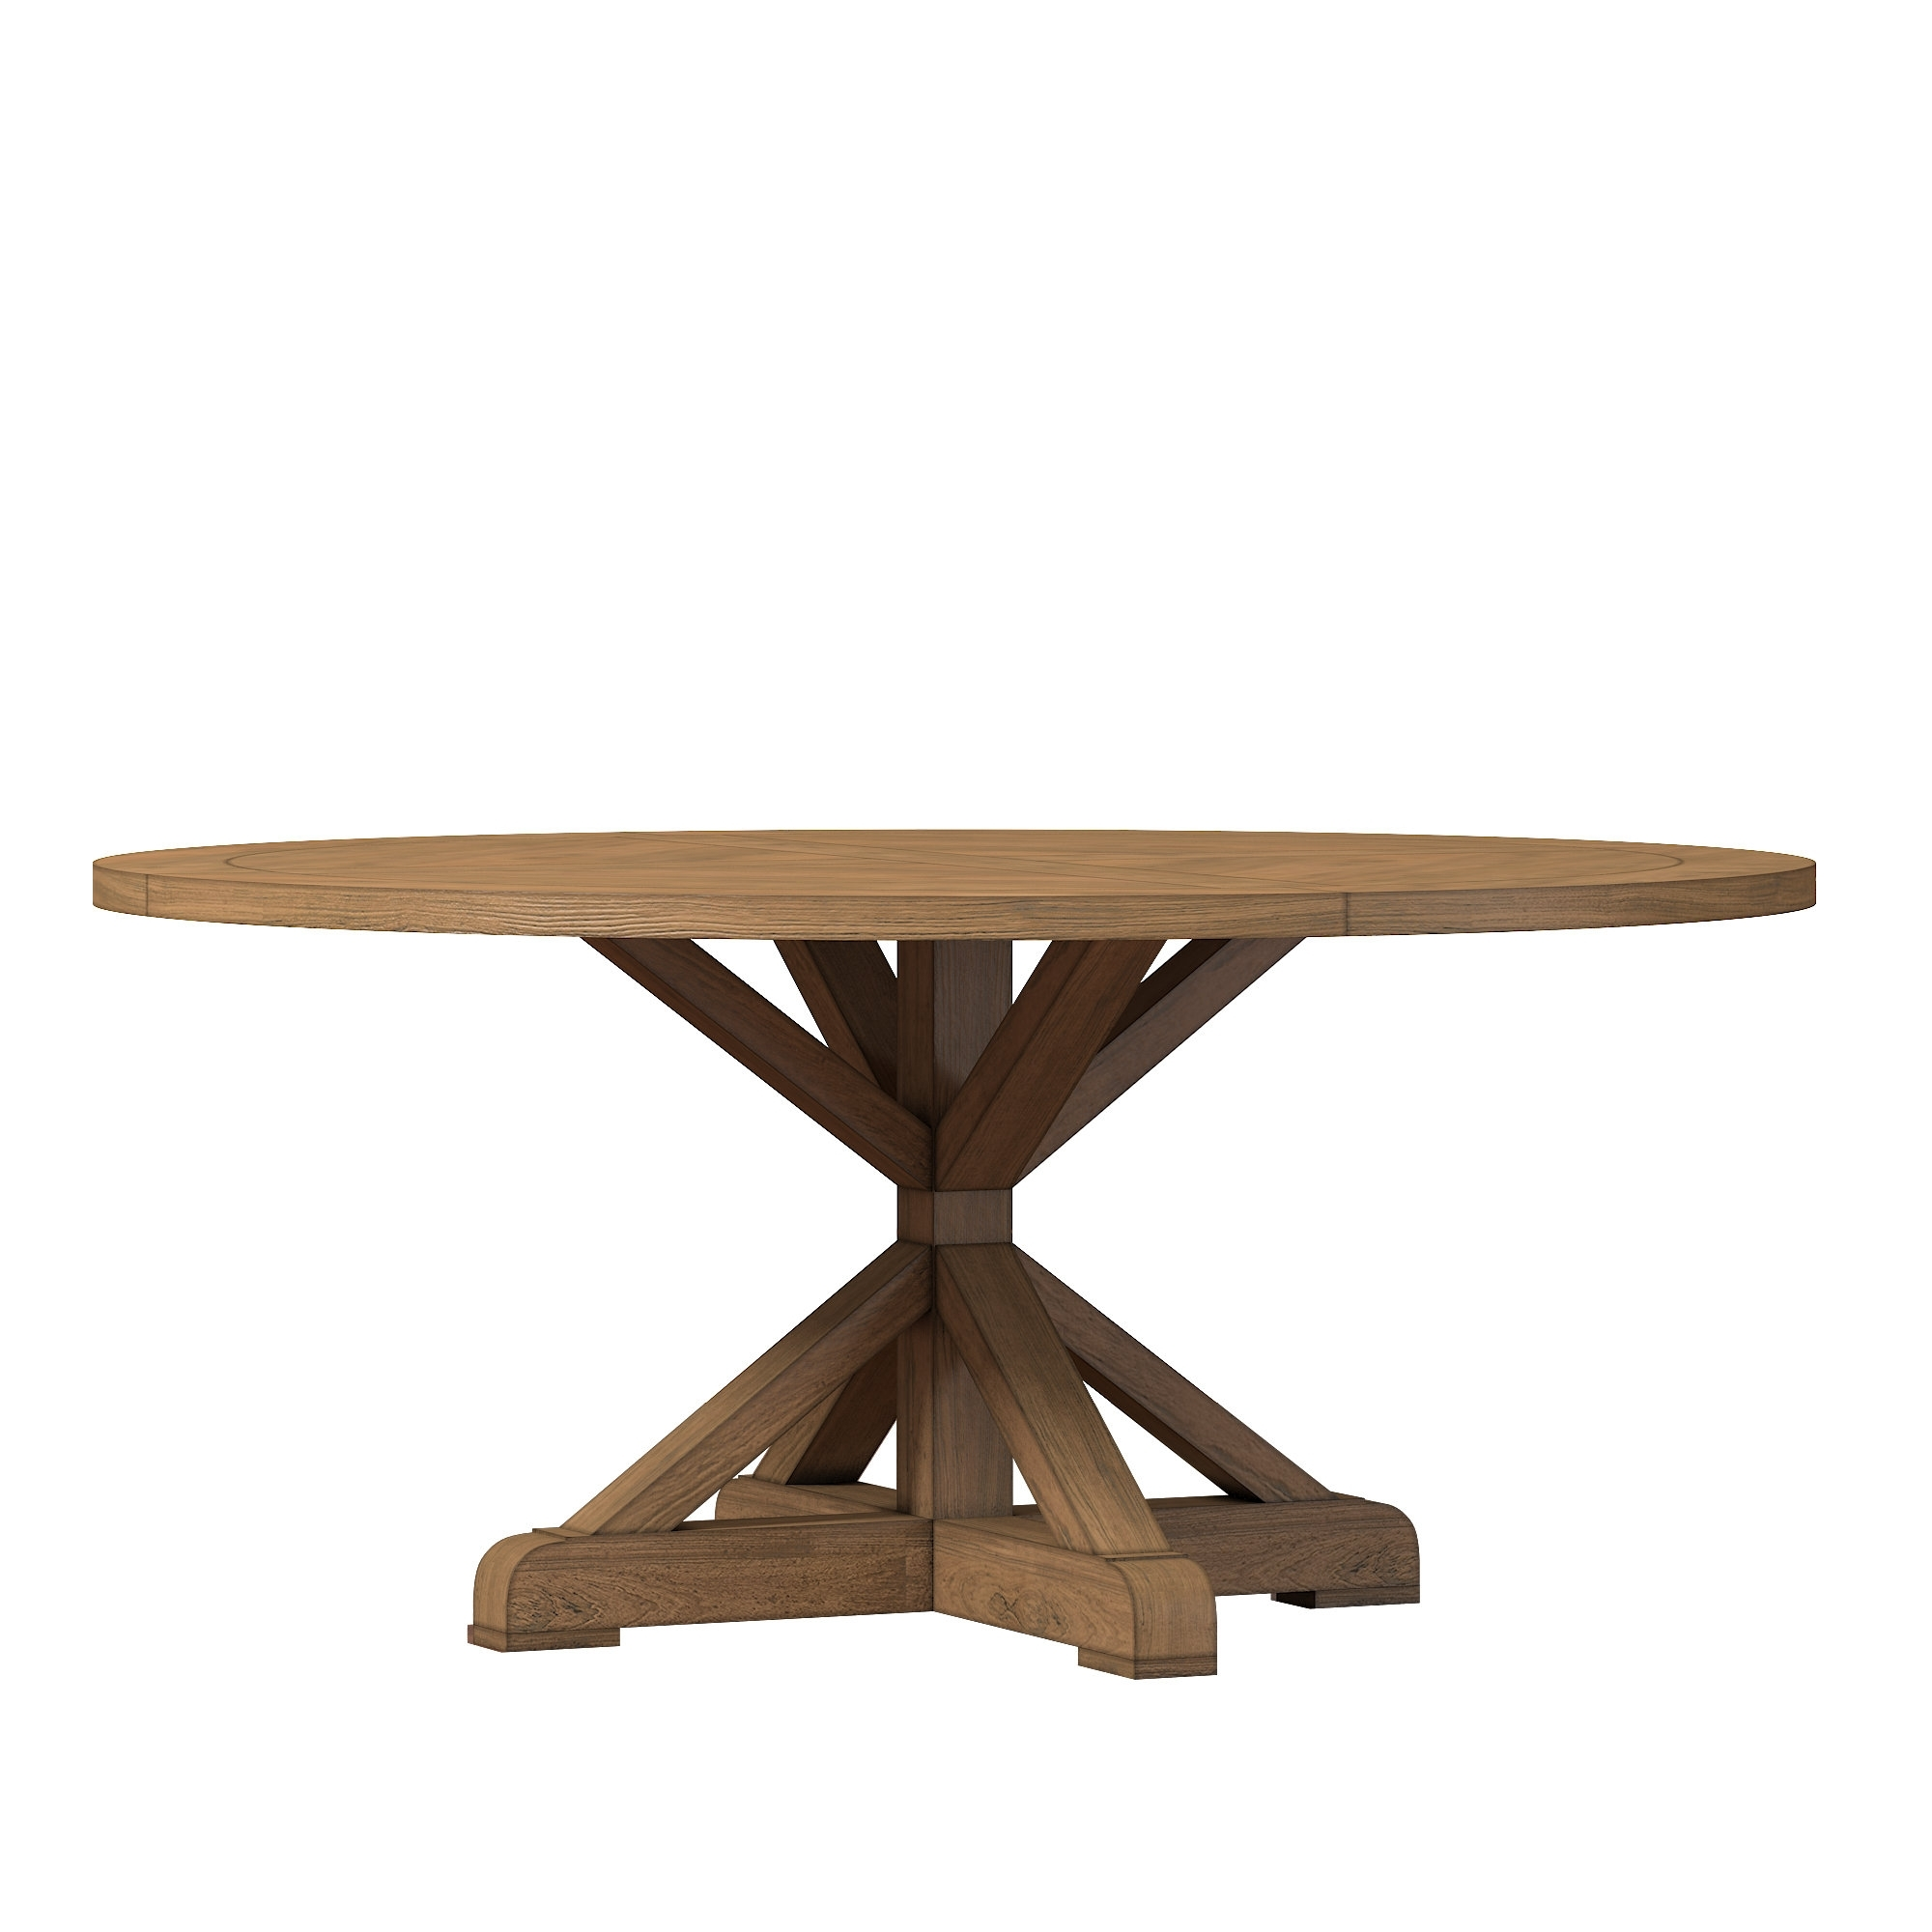 Rustic Dining Tables Within Newest Lark Manor Peralta Round Rustic Dining Table & Reviews (View 21 of 25)